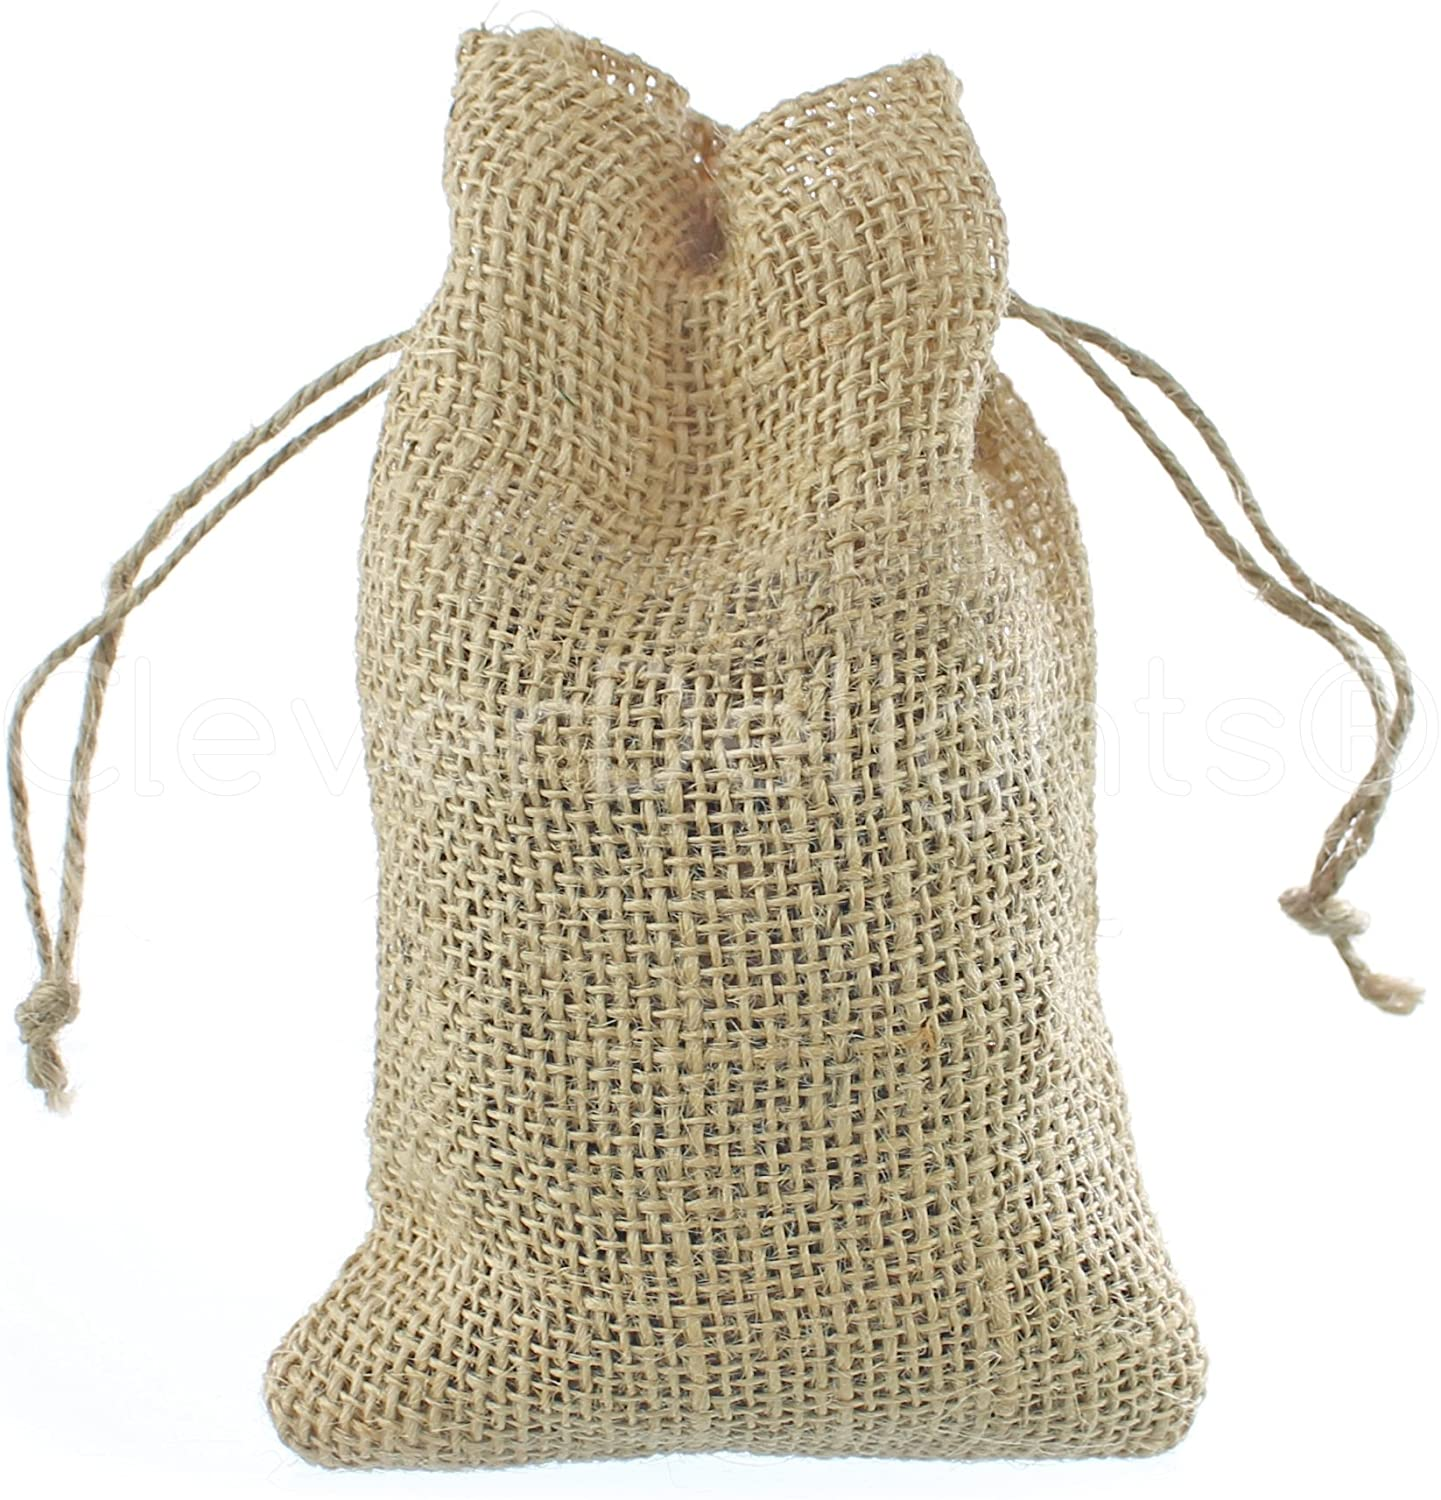 CleverDelights 4 x 6 Burlap Bags with Natural Jute Drawstring - 25 Pack - Small Burlap Pouch Sack Favor Bag for Showers Weddings Parties and Receptions - 4x6 inch